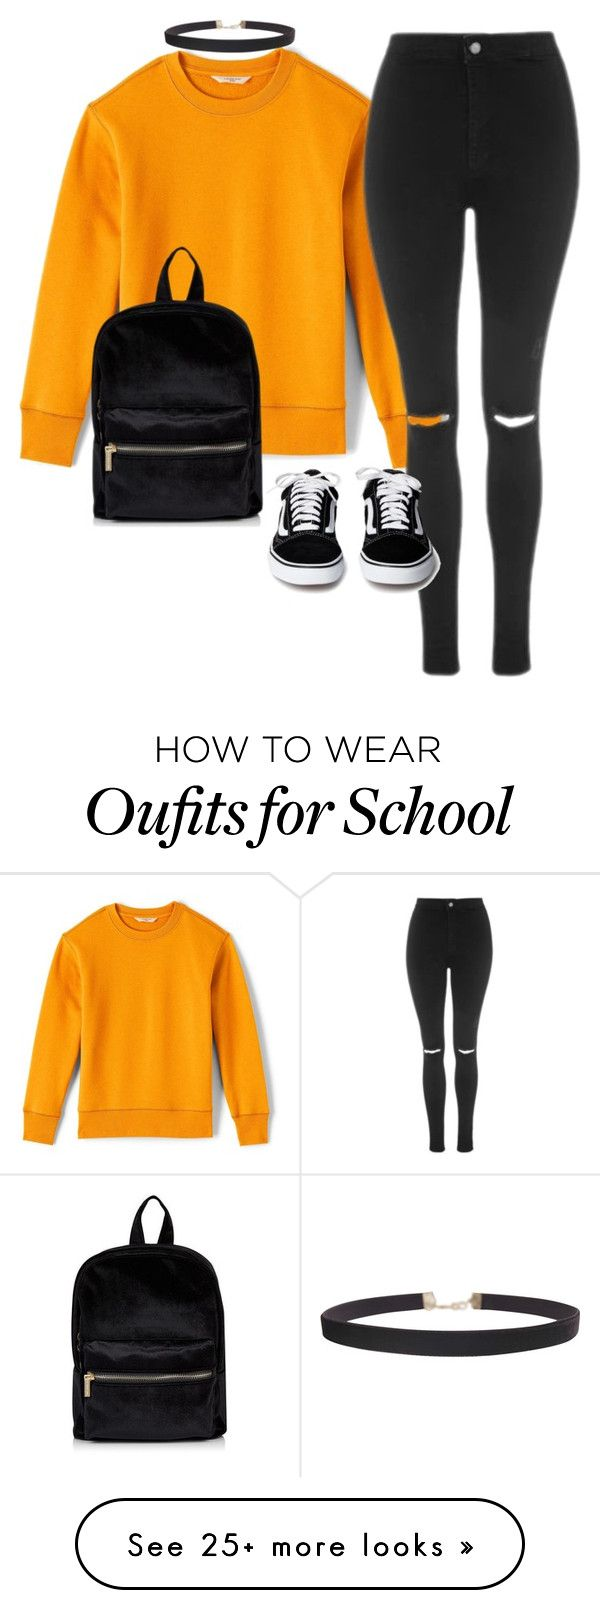 """Untitled #109"" by evesav on Polyvore featuring Humble Chic and Topshop"